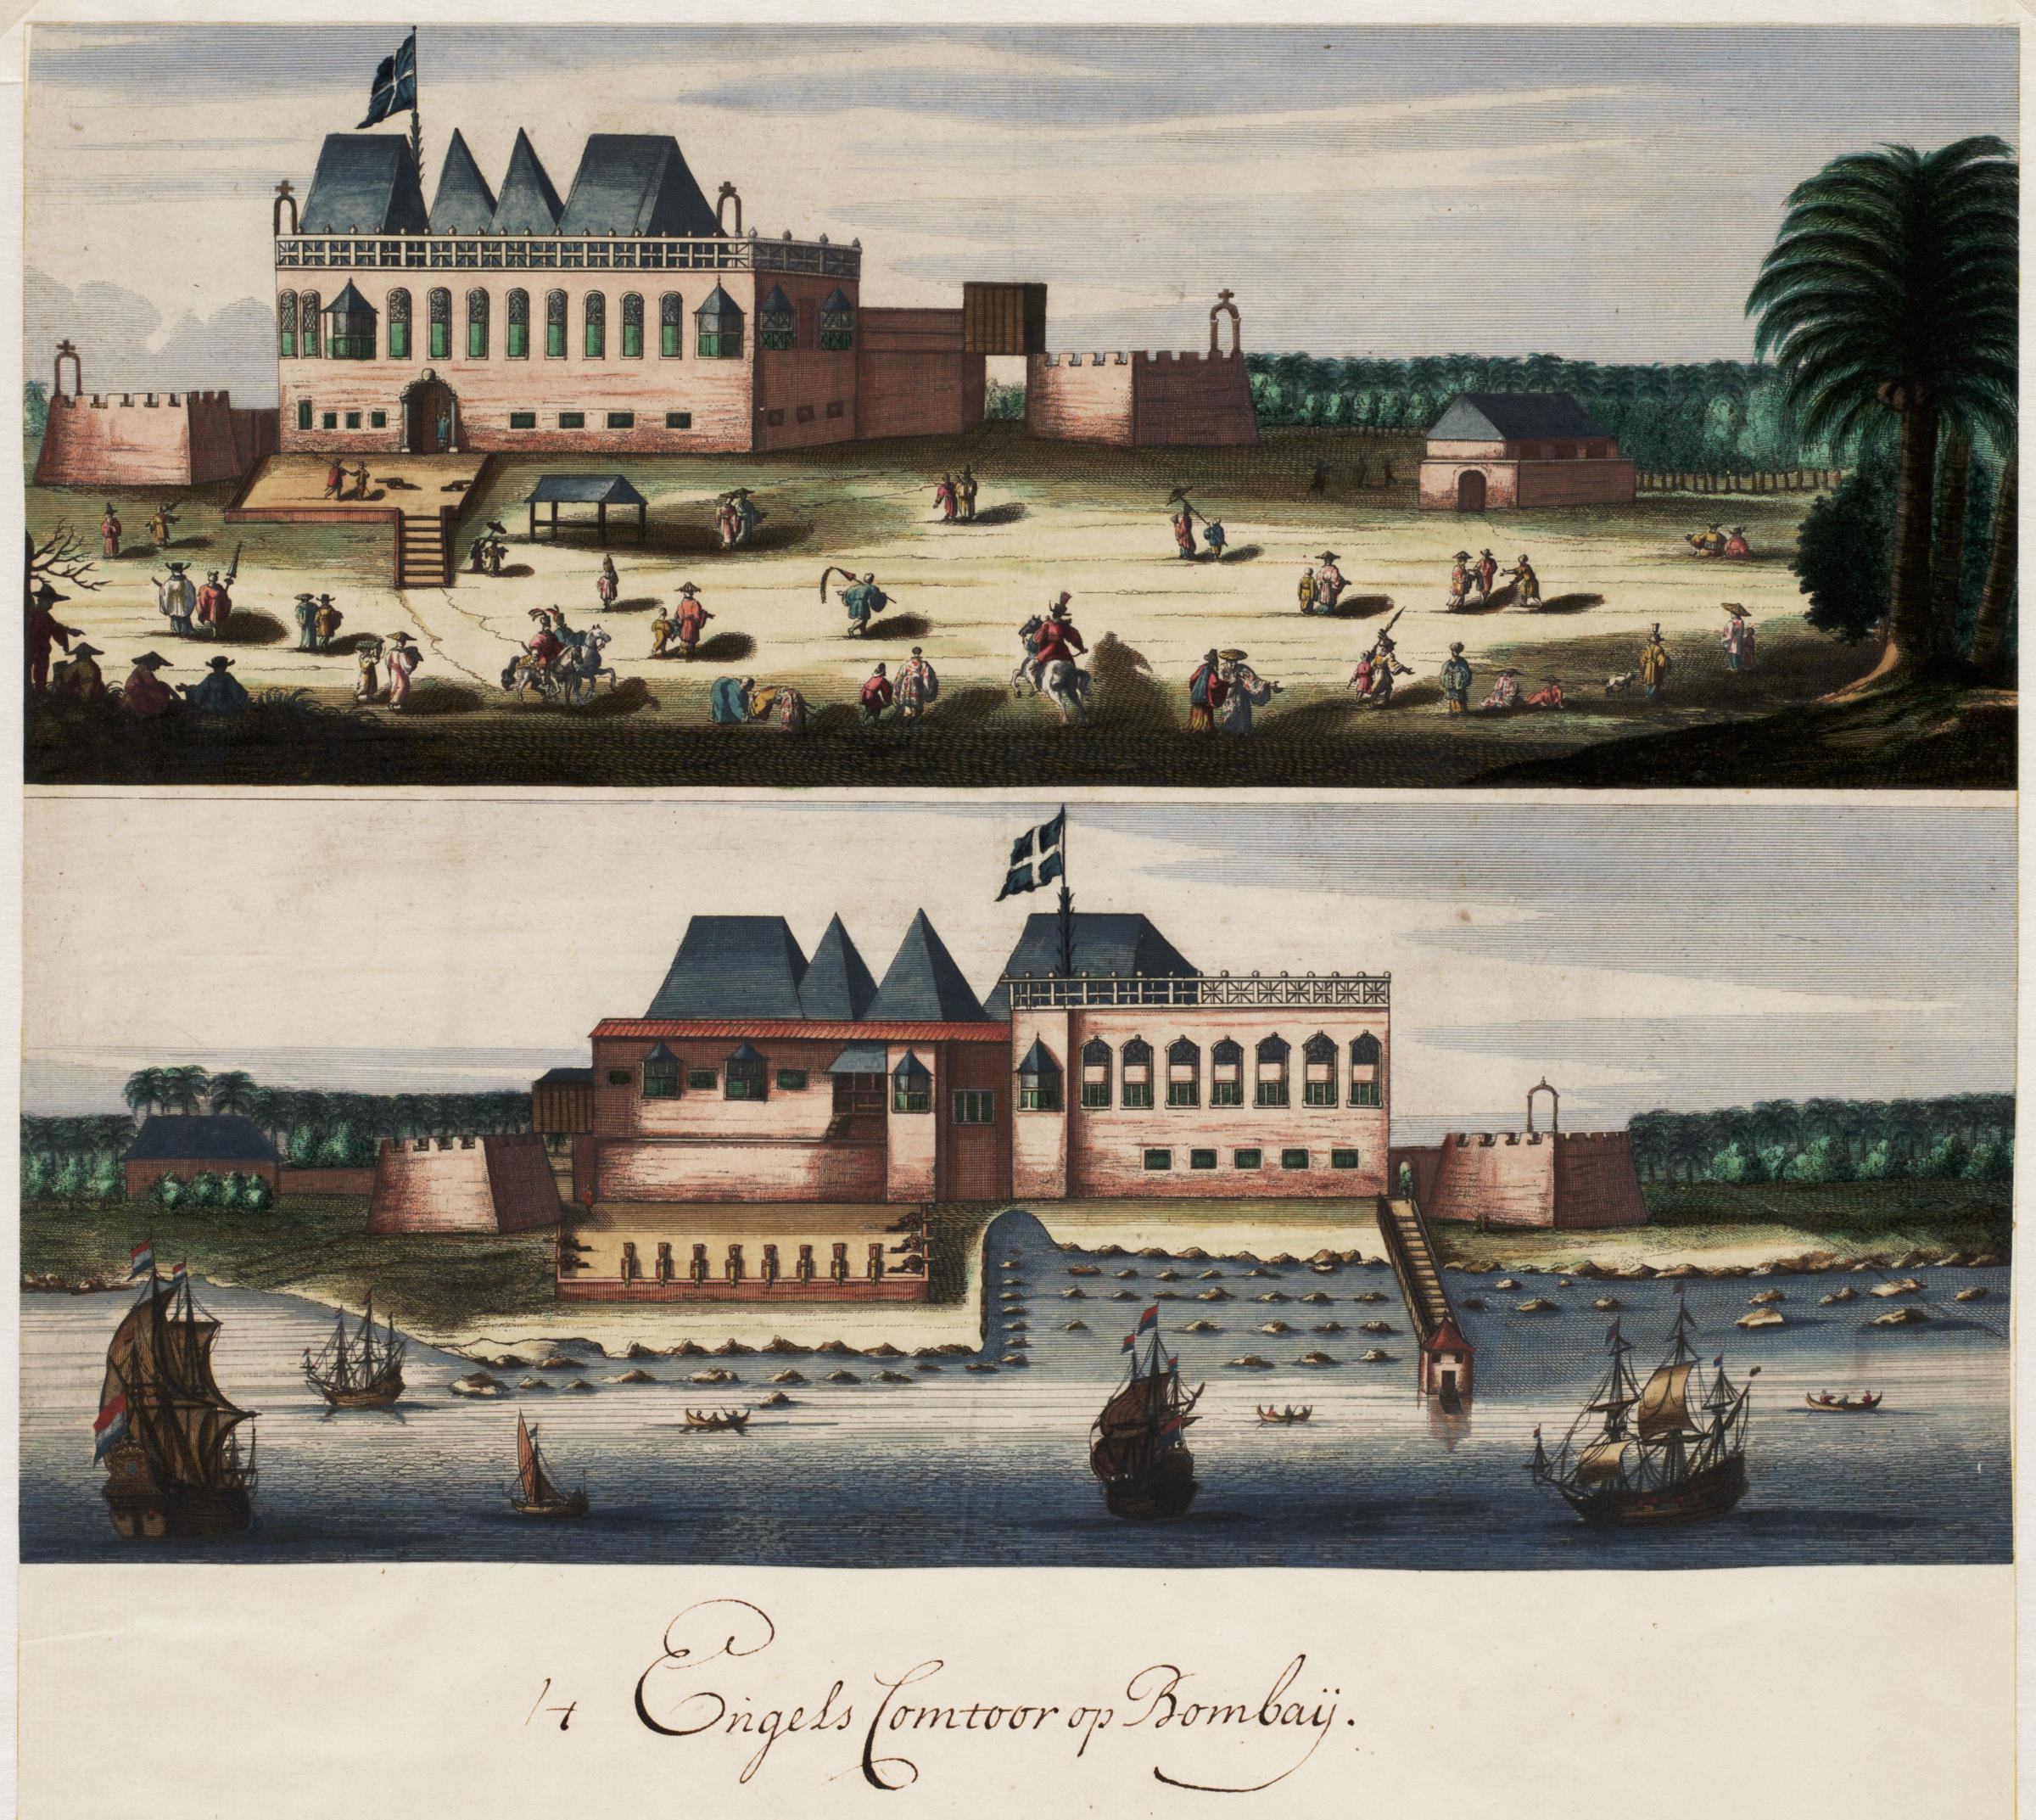 https://upload.wikimedia.org/wikipedia/commons/a/a6/AMH-6748-NA_Two_views_of_the_English_fort_in_Bombay.jpg